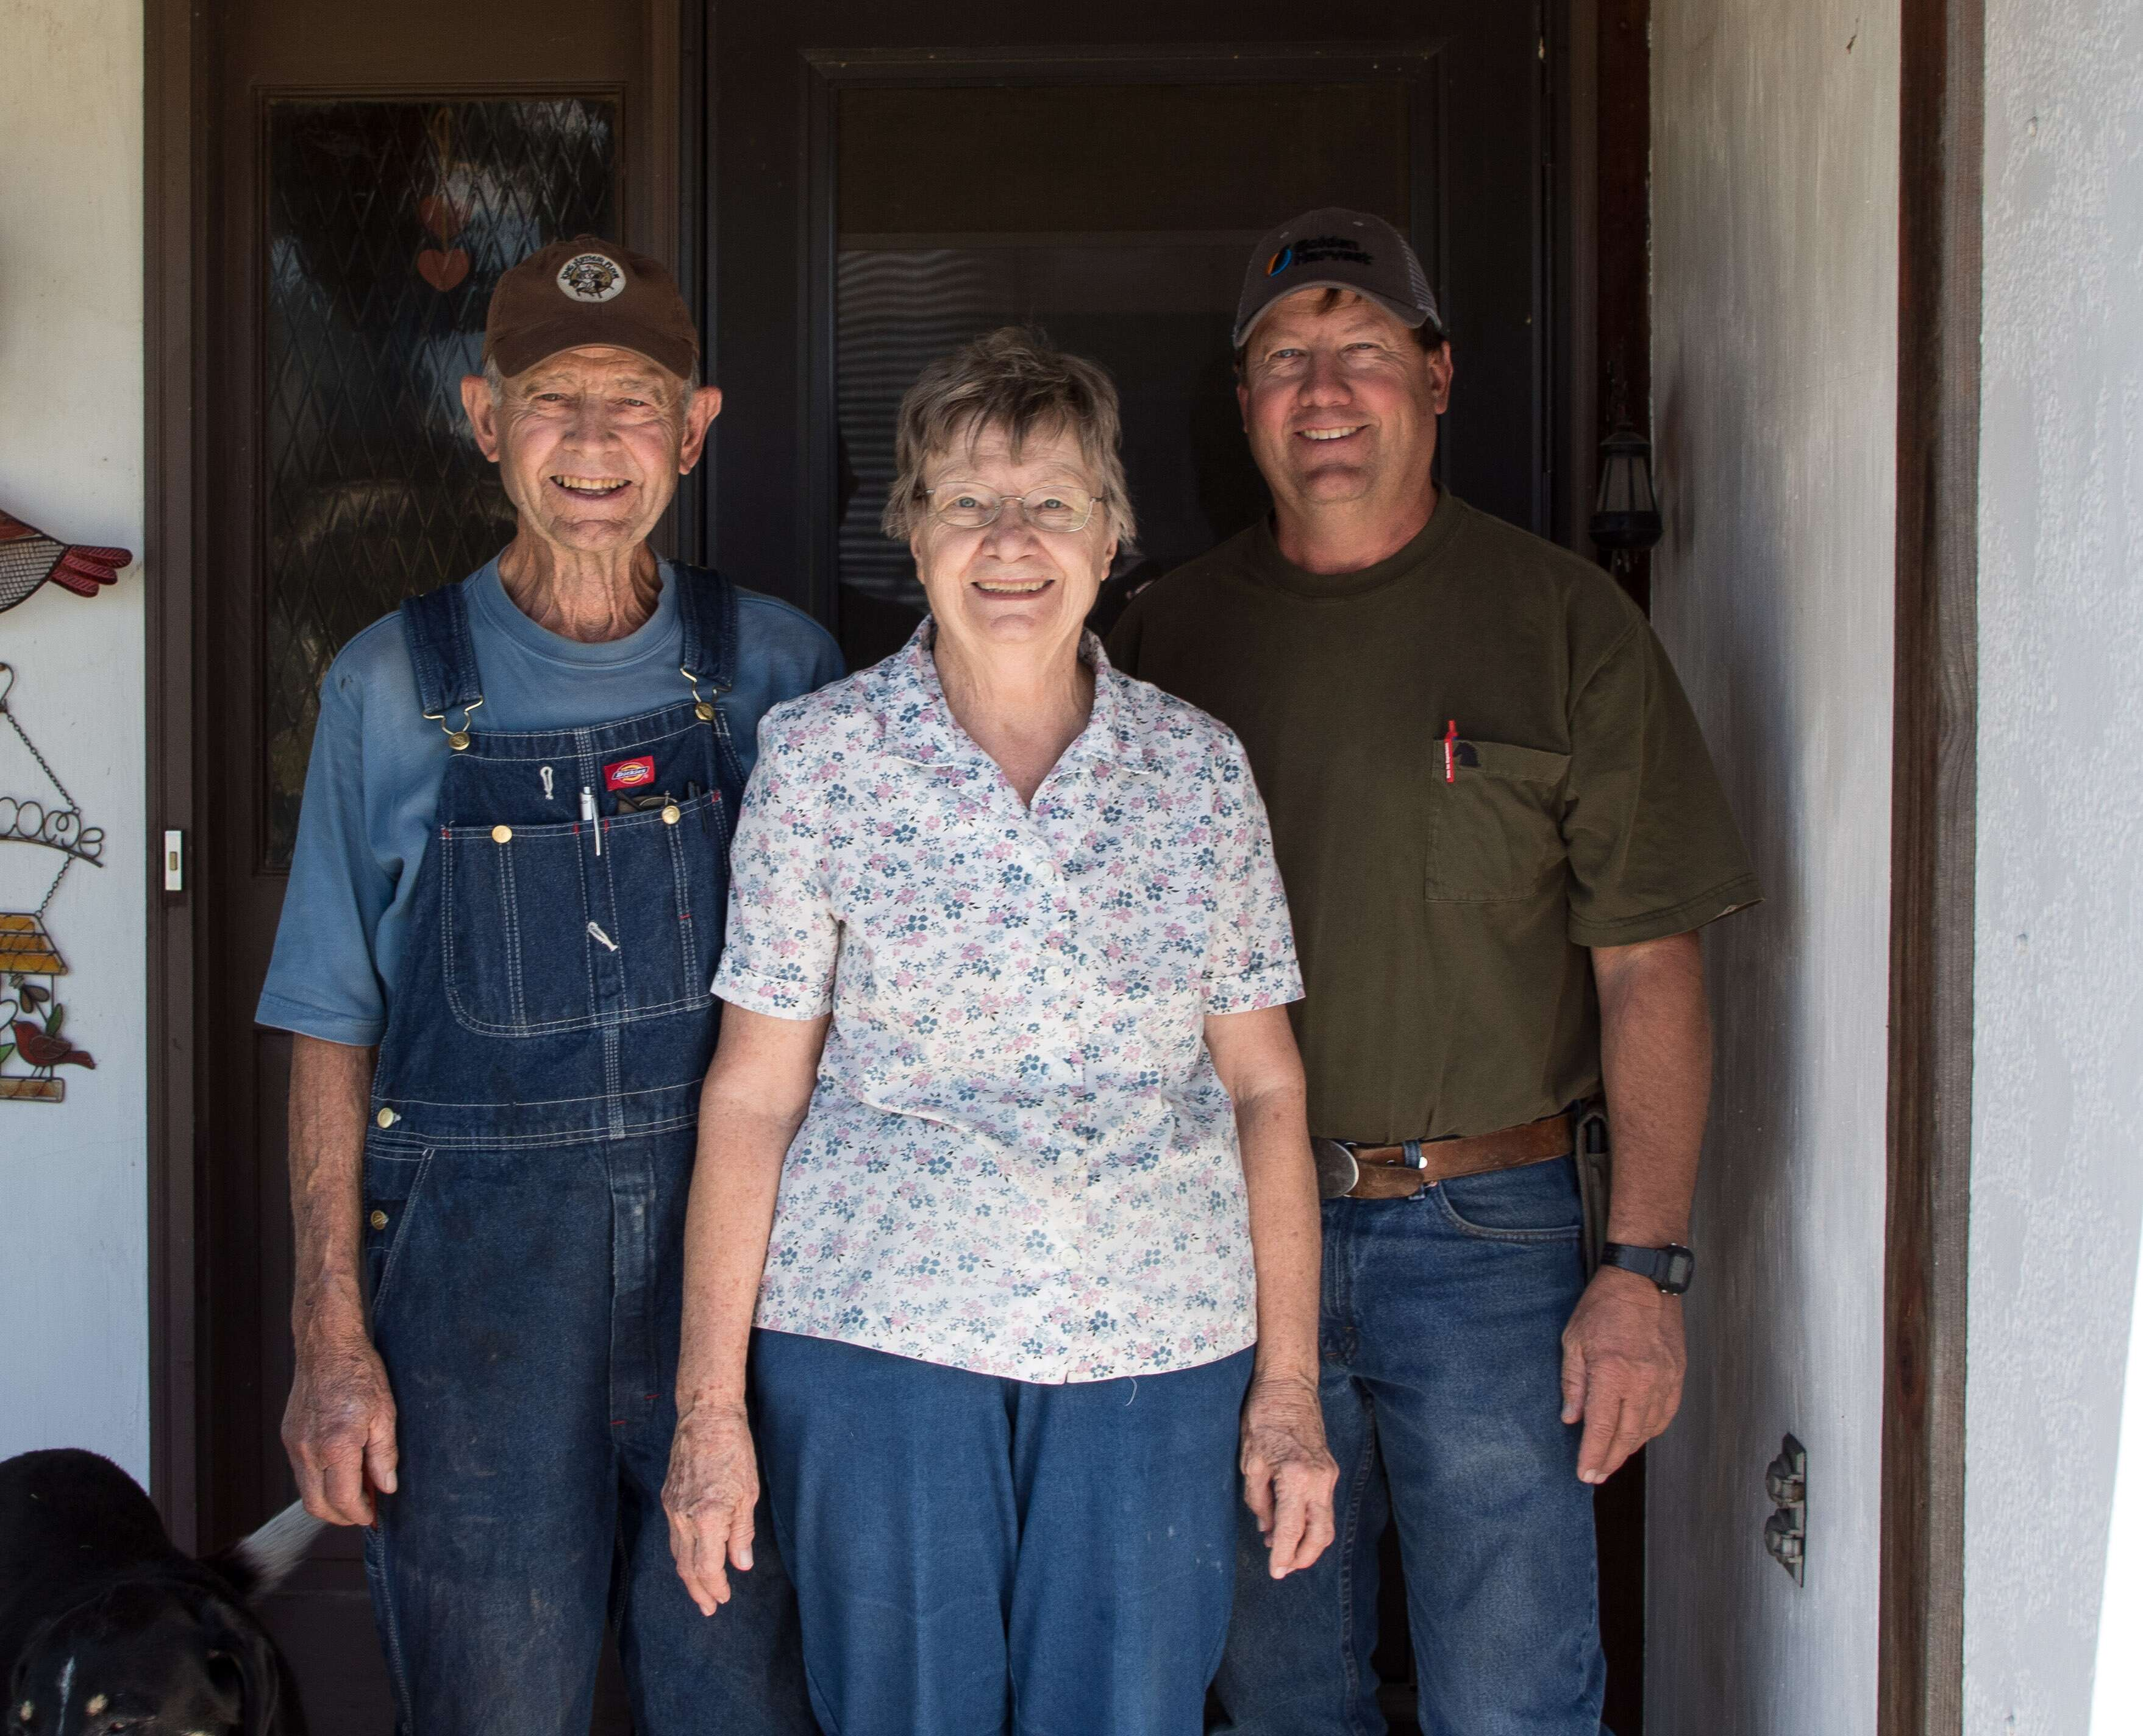 Bill, Wilma, and Carl Mai on their front porch